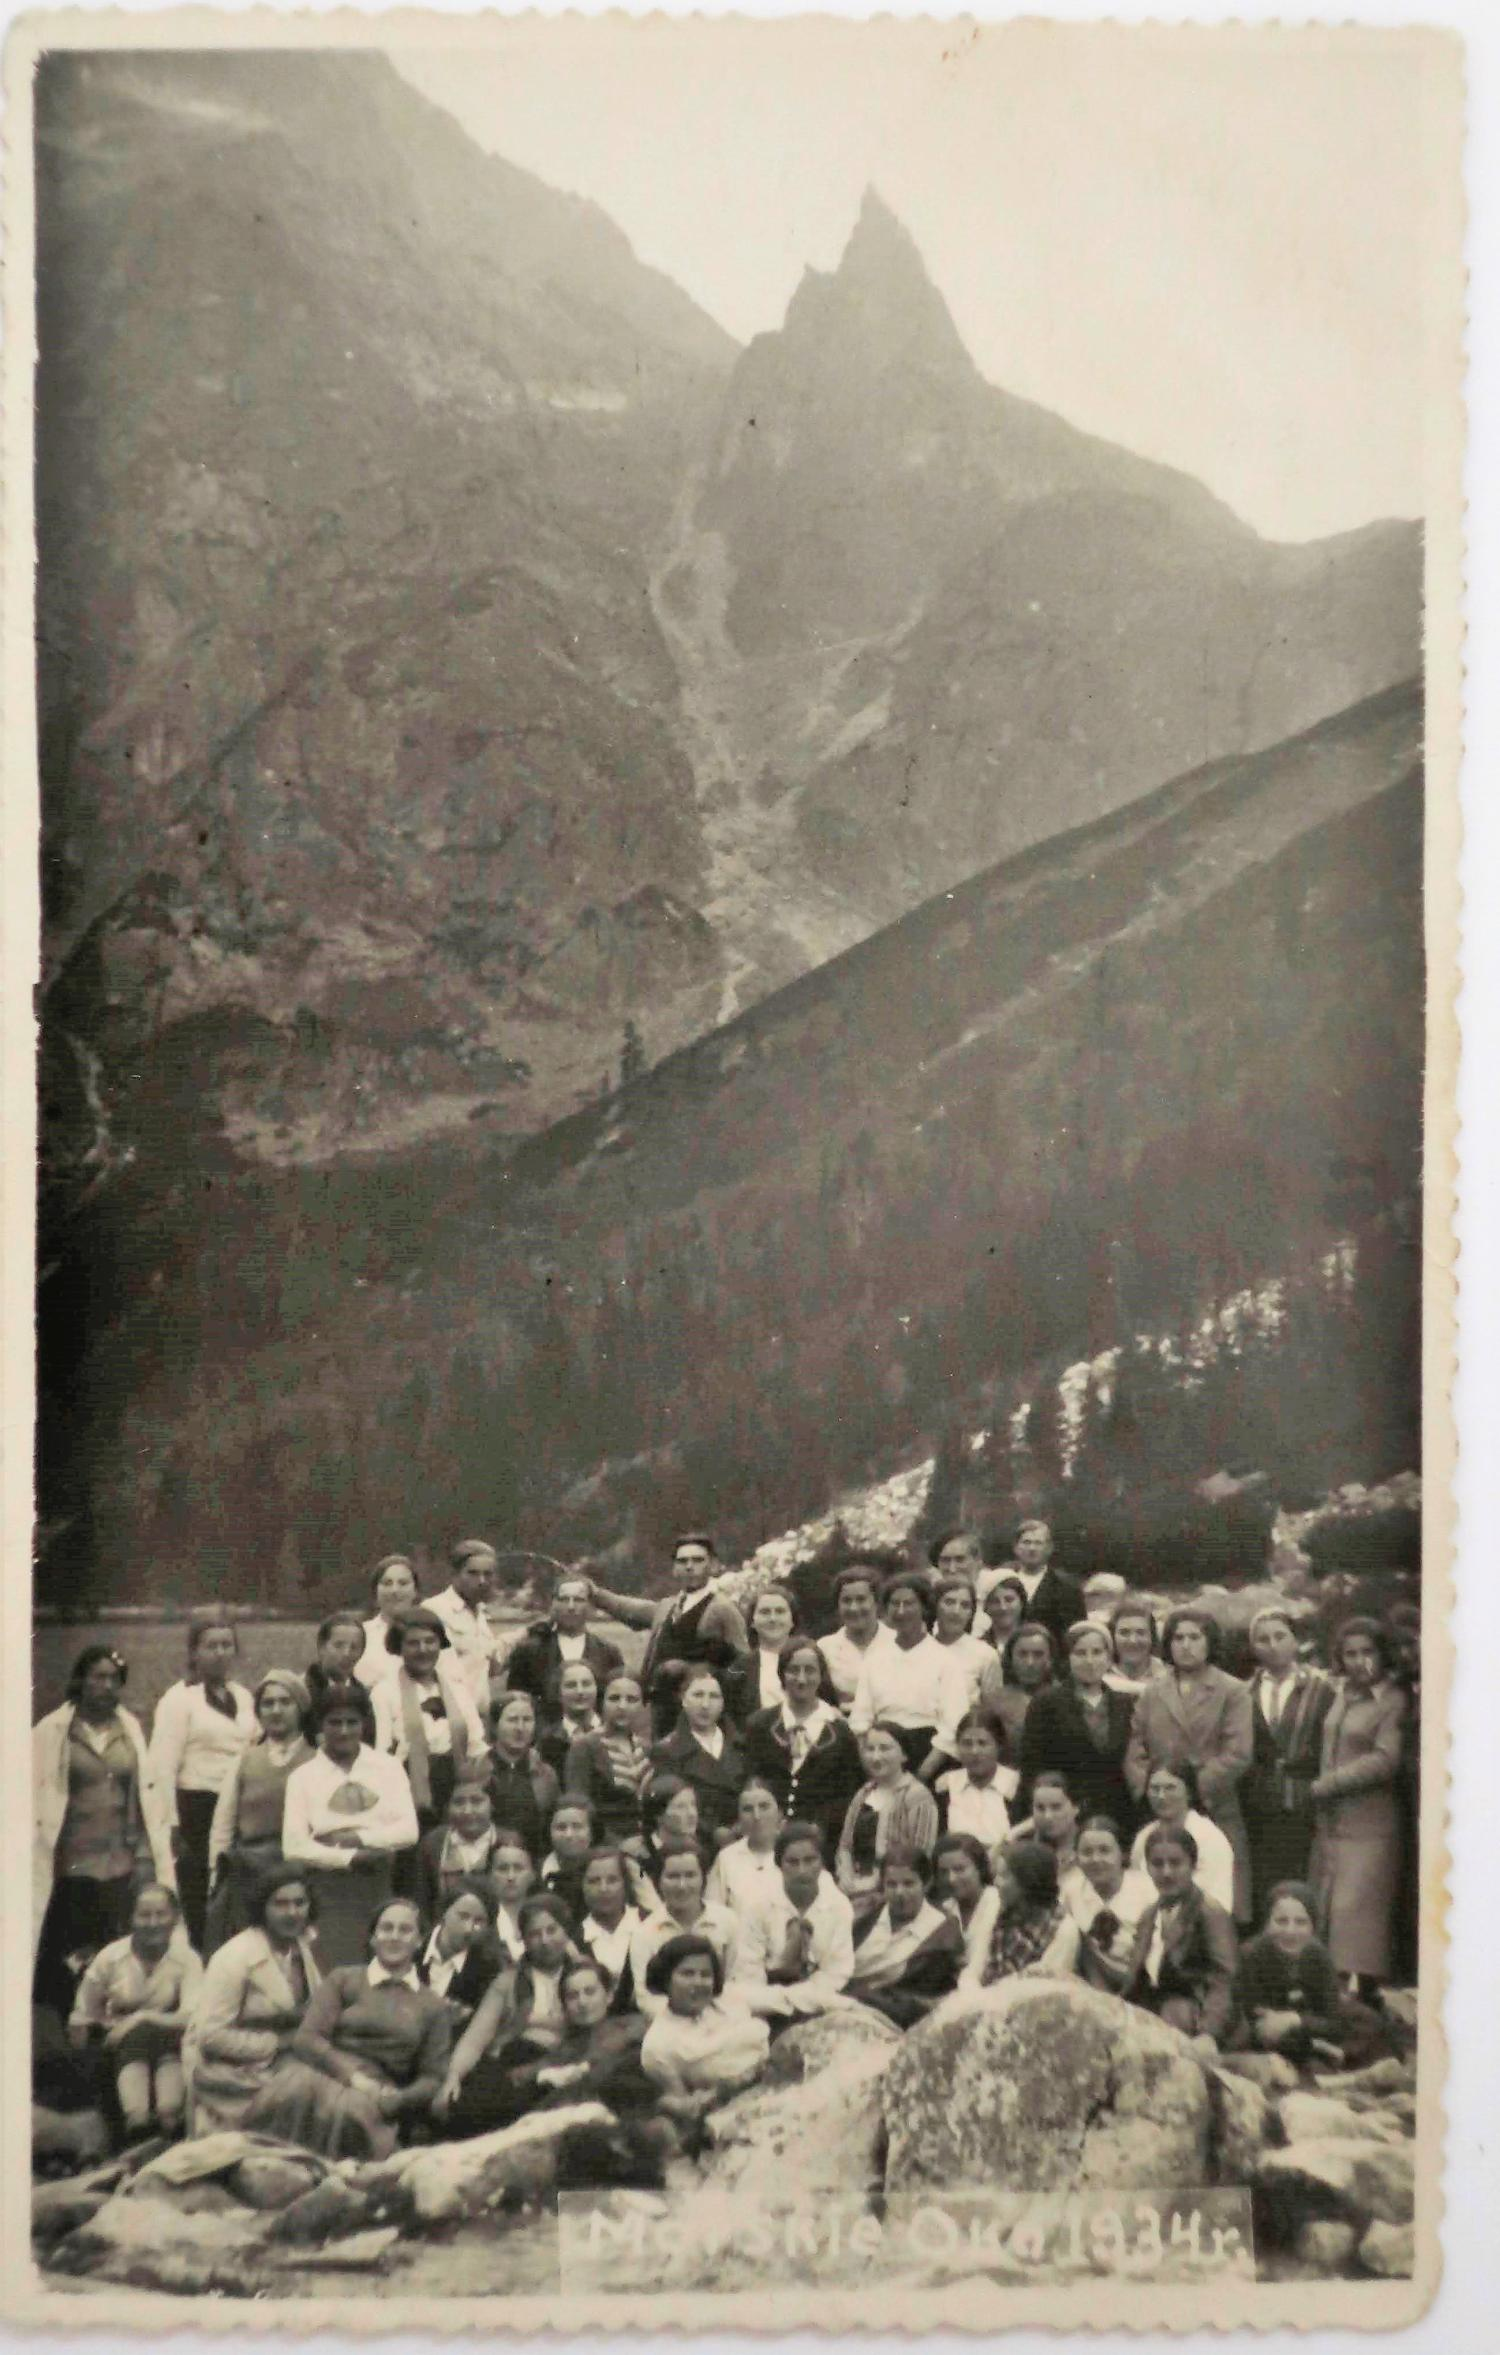 a group of people standing by mountains.